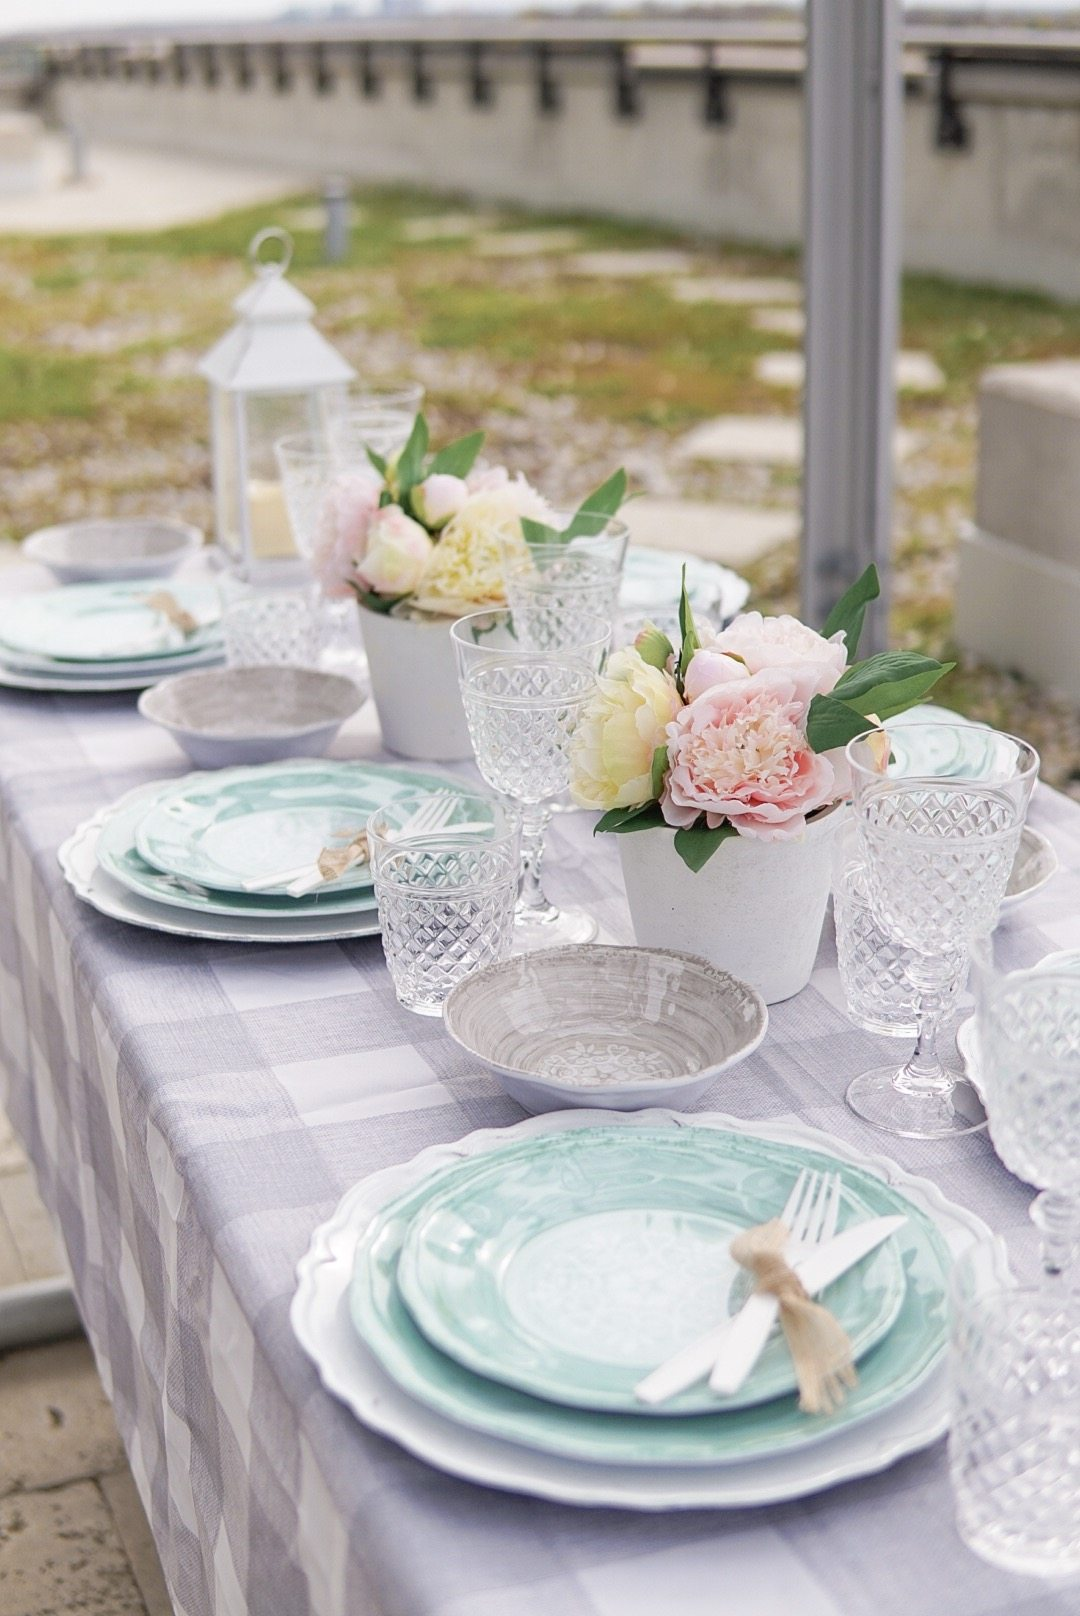 blue farmhouse plates